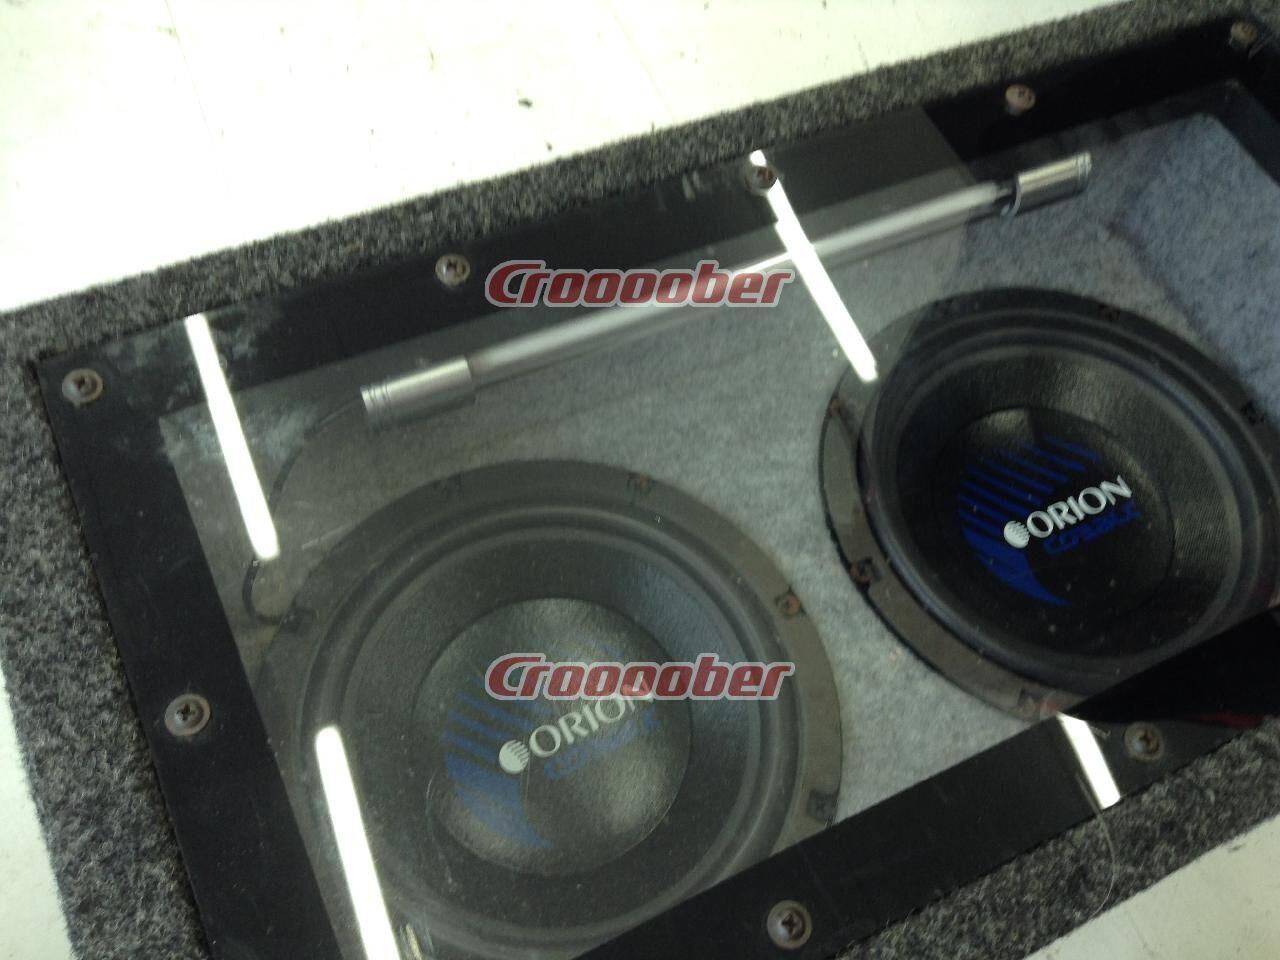 Orion 8 Inch Subwoofer Box Included Sub Woofer Speakers Croooober